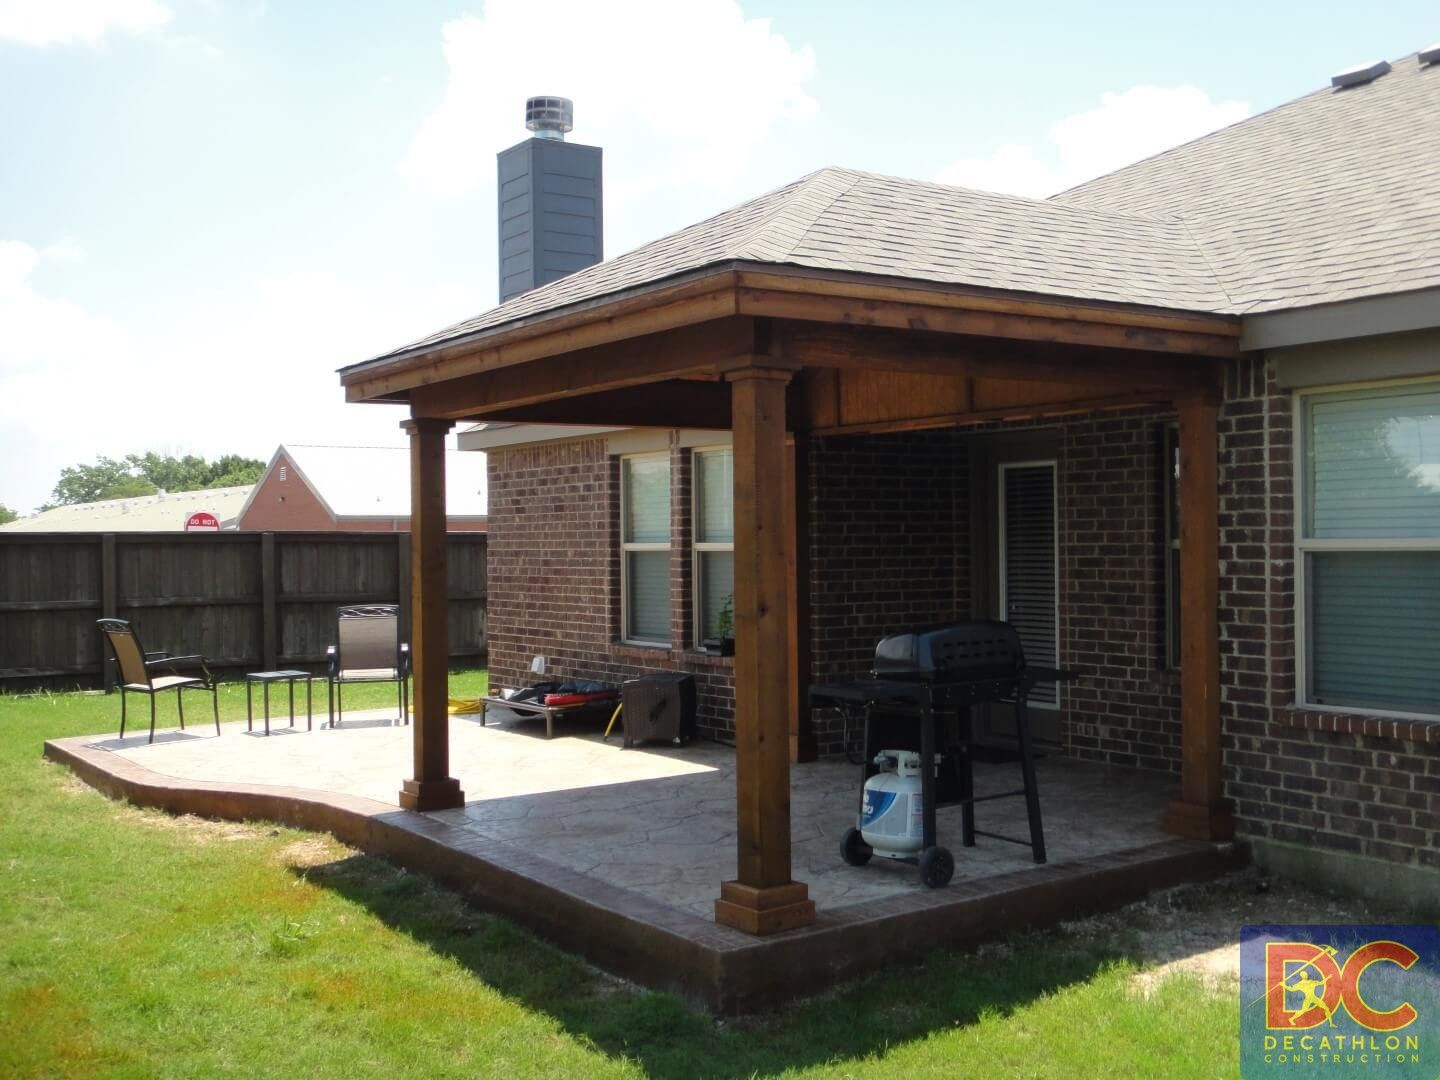 Hip And Ridge Patio Covers Gallery Highest Quality Waterproof Patio Covers In Da Covered Patio Design Patio Covered Patio